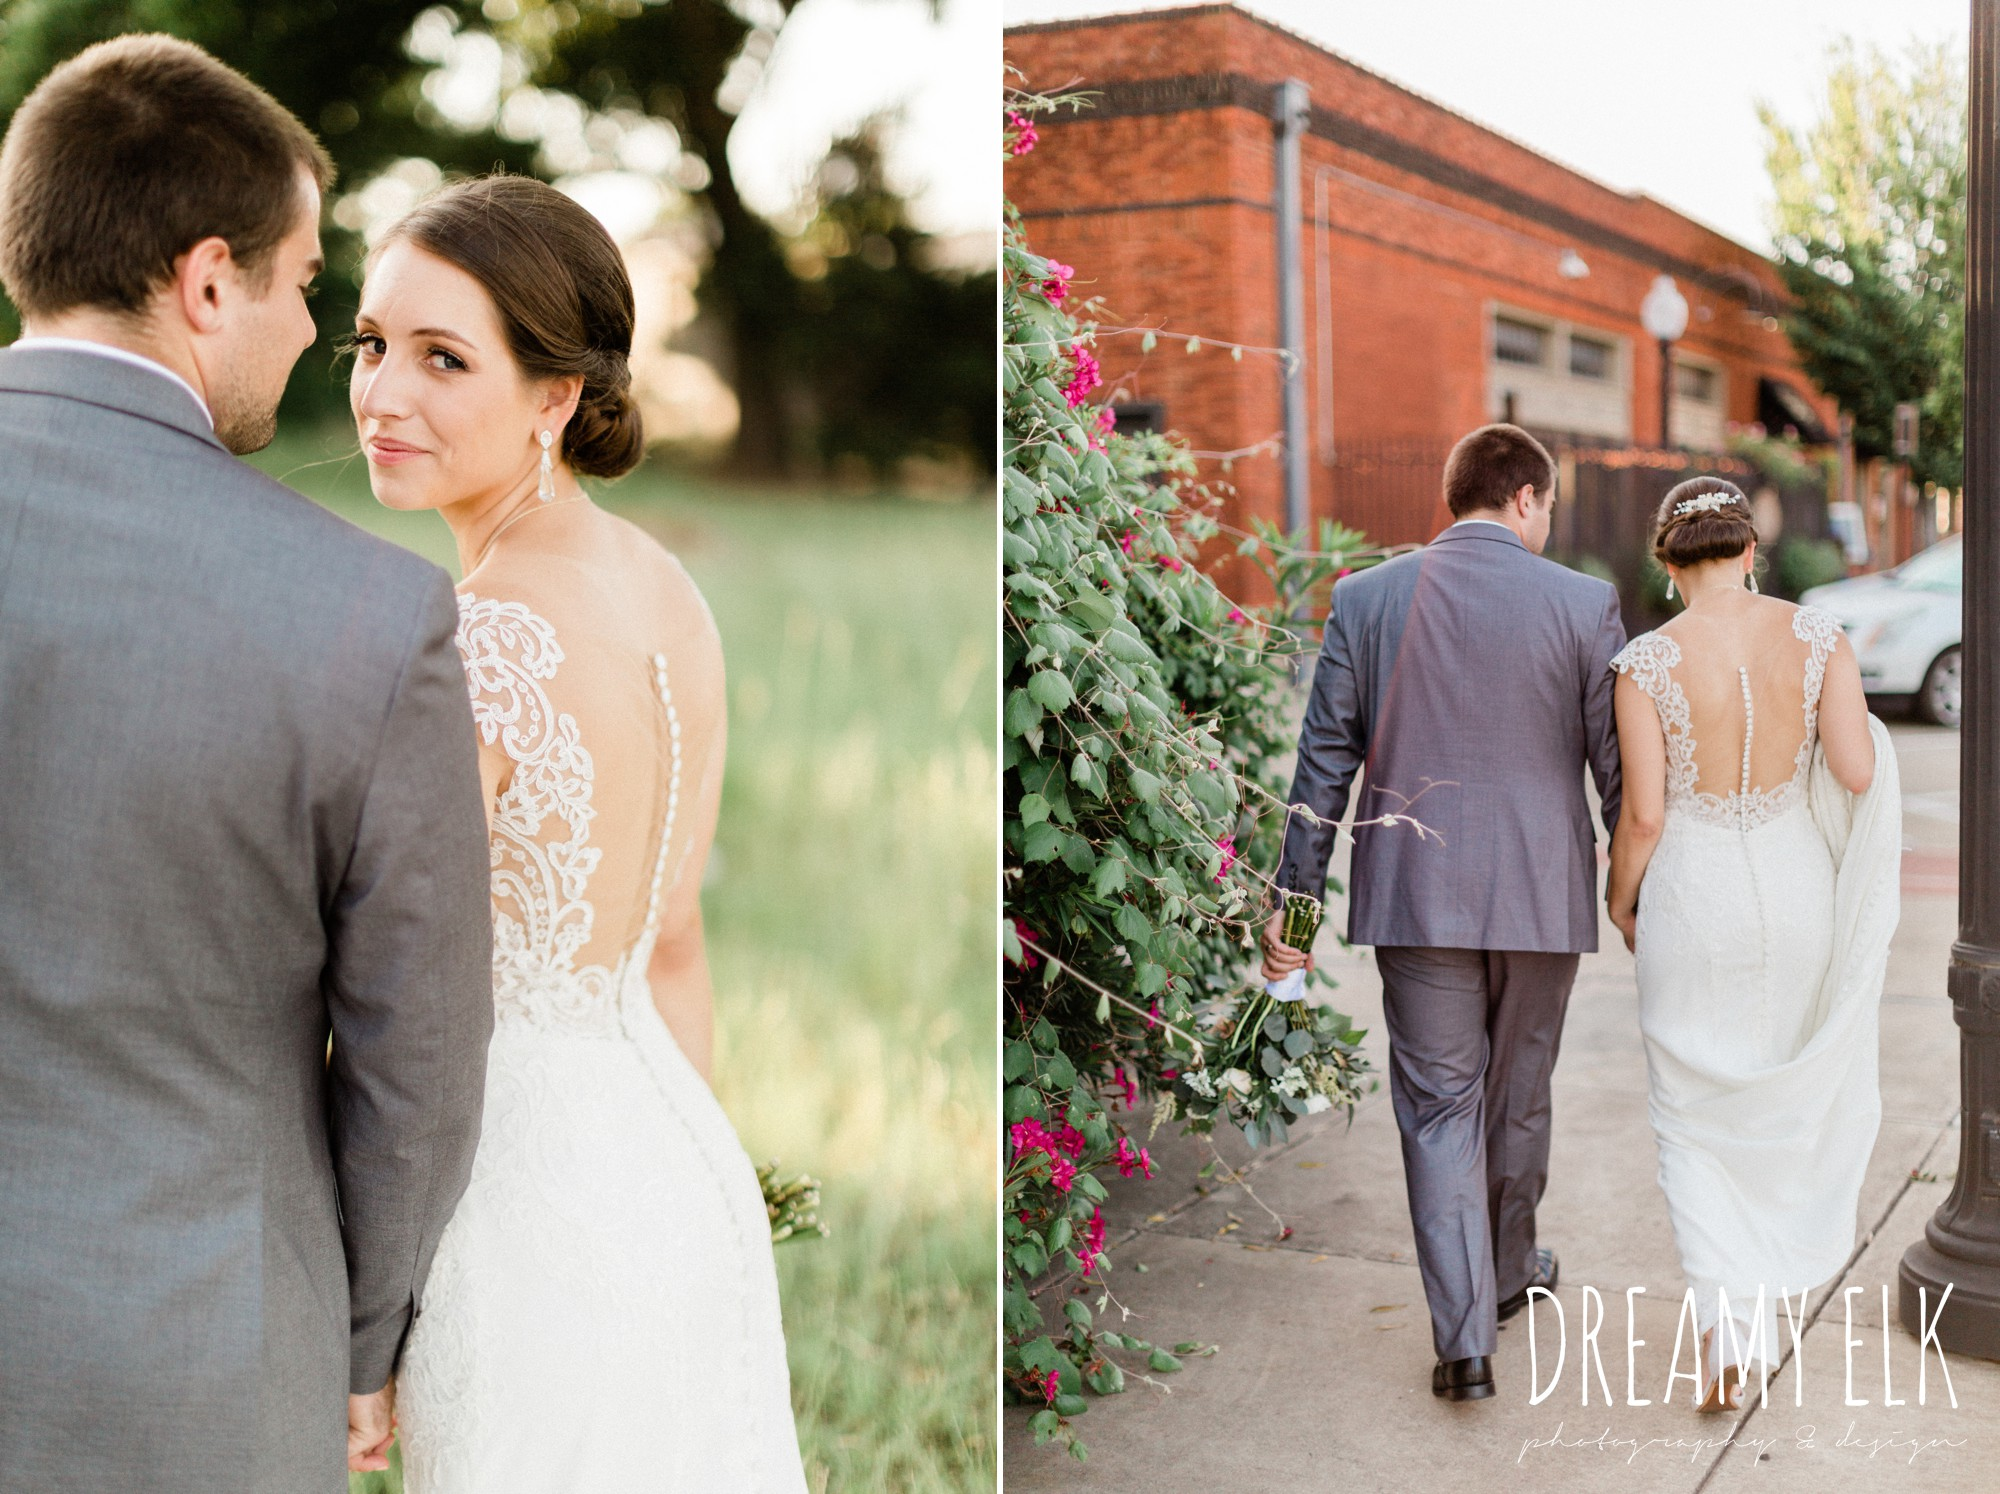 gray suit, navy tie, bride and groom, essense of australia column dress, unforgettable floral, spring wedding photo college station texas, dreamy elk photography and design